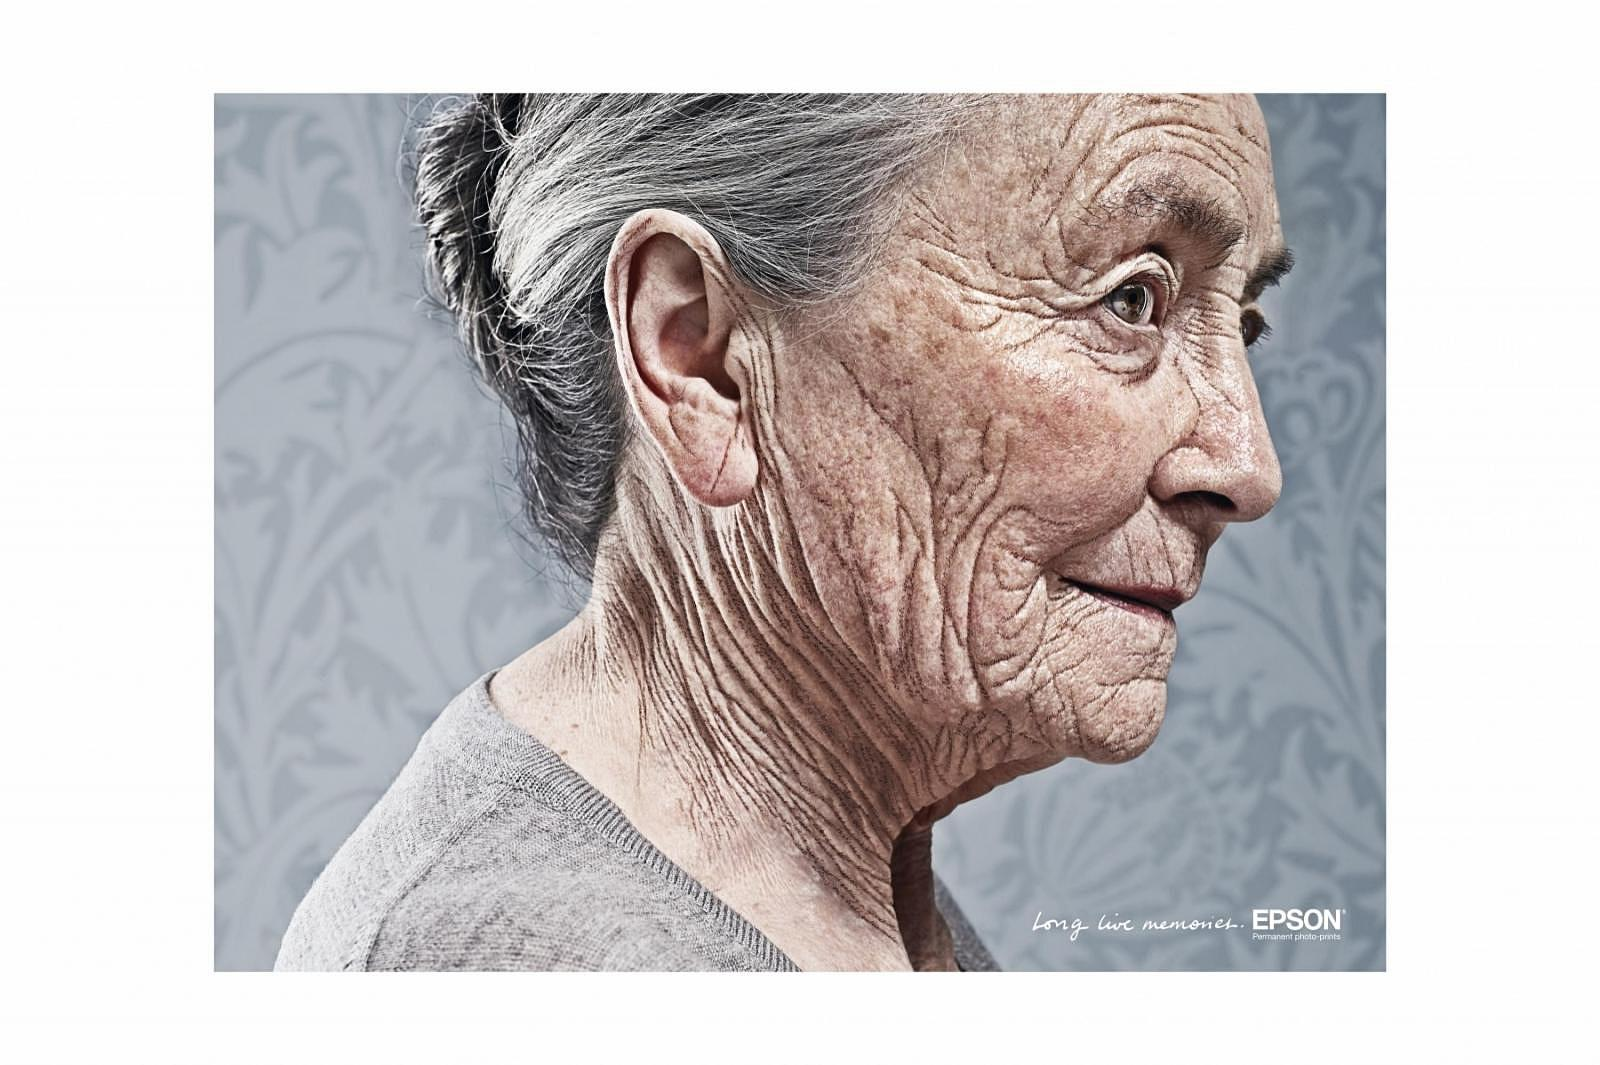 Epson Print Ad -  Memories of men